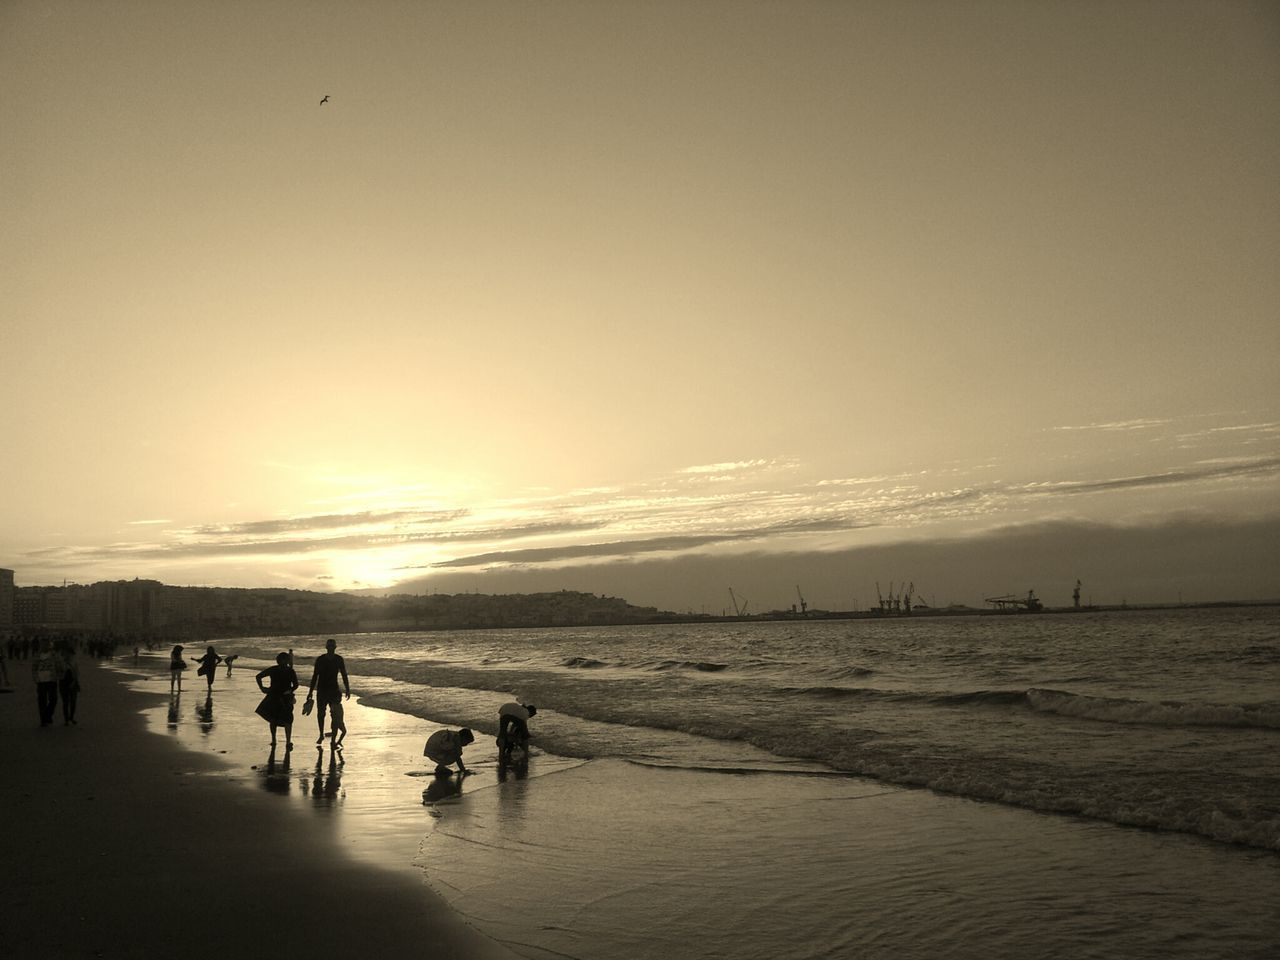 Scenic View Of Silhouette People On Shore During Sunset